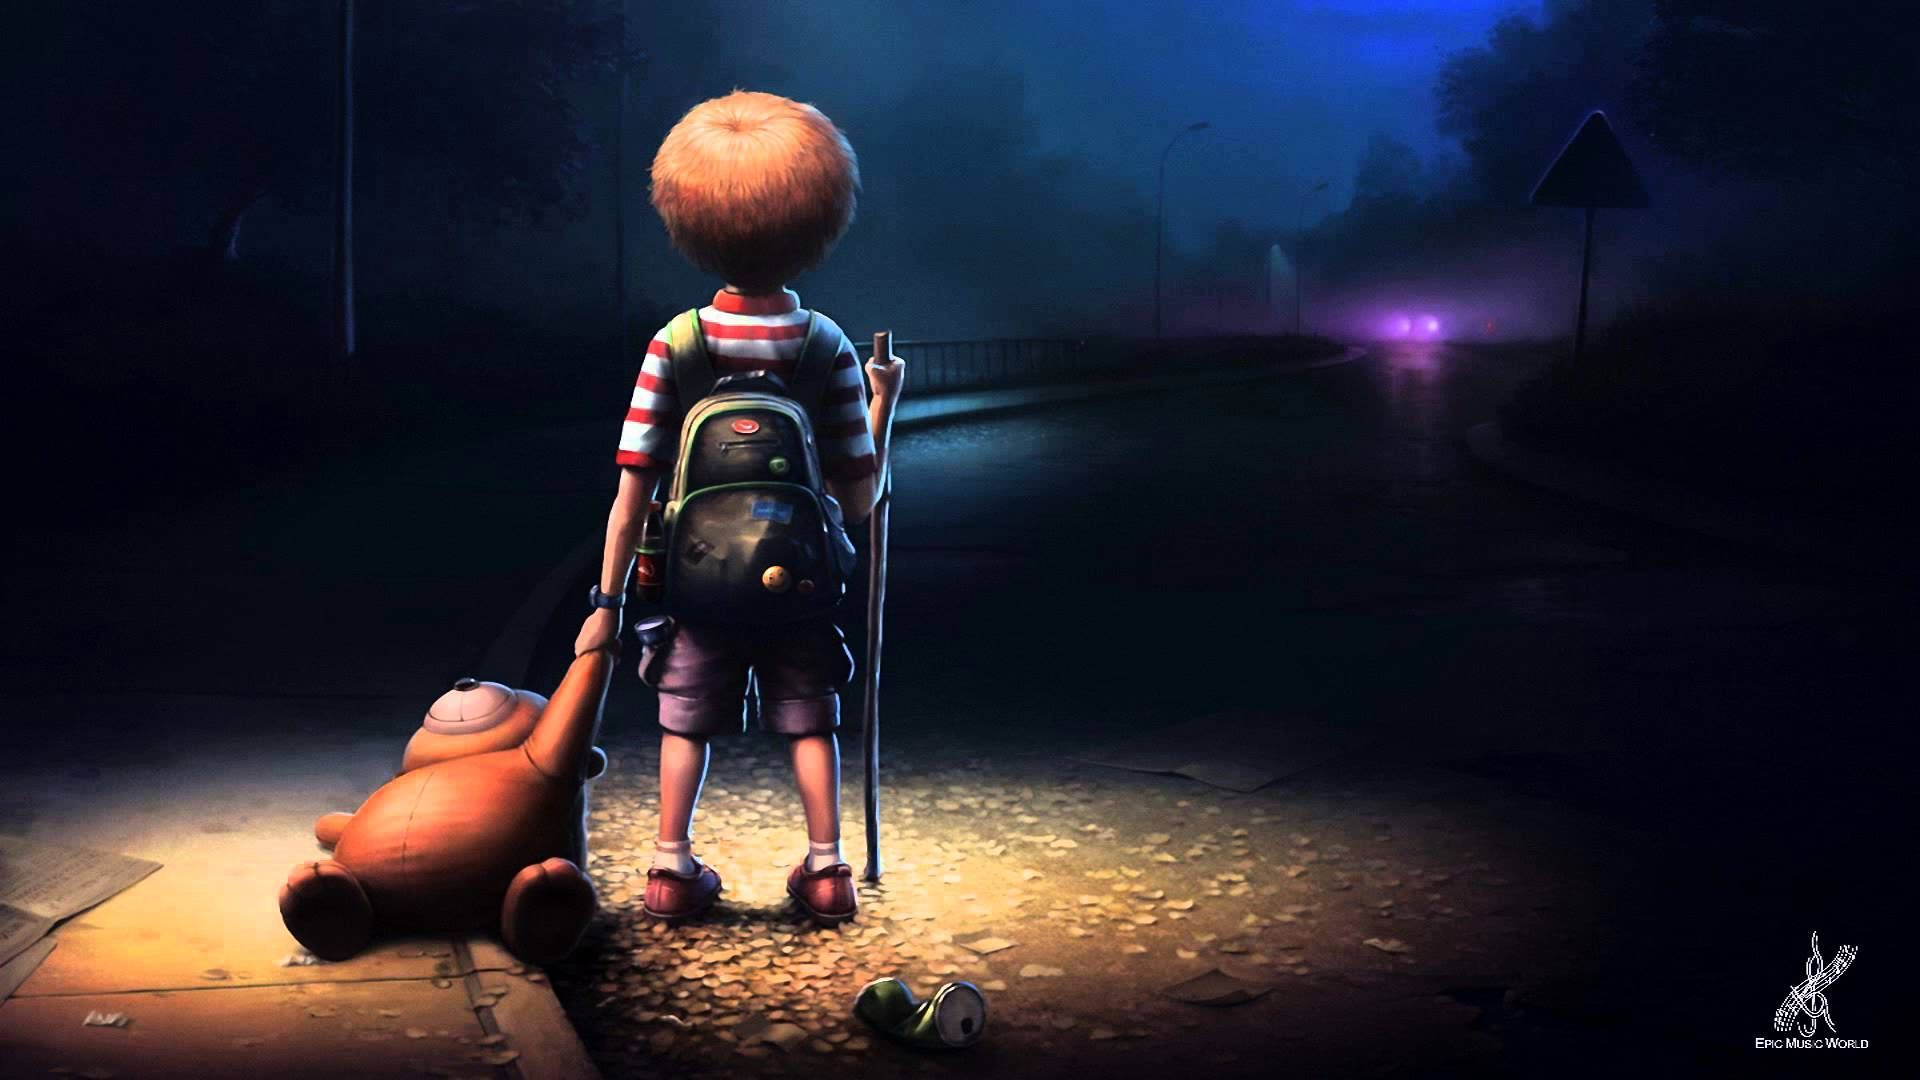 Alone Cartoon Wallpapers Top Free Alone Cartoon Backgrounds Wallpaperaccess